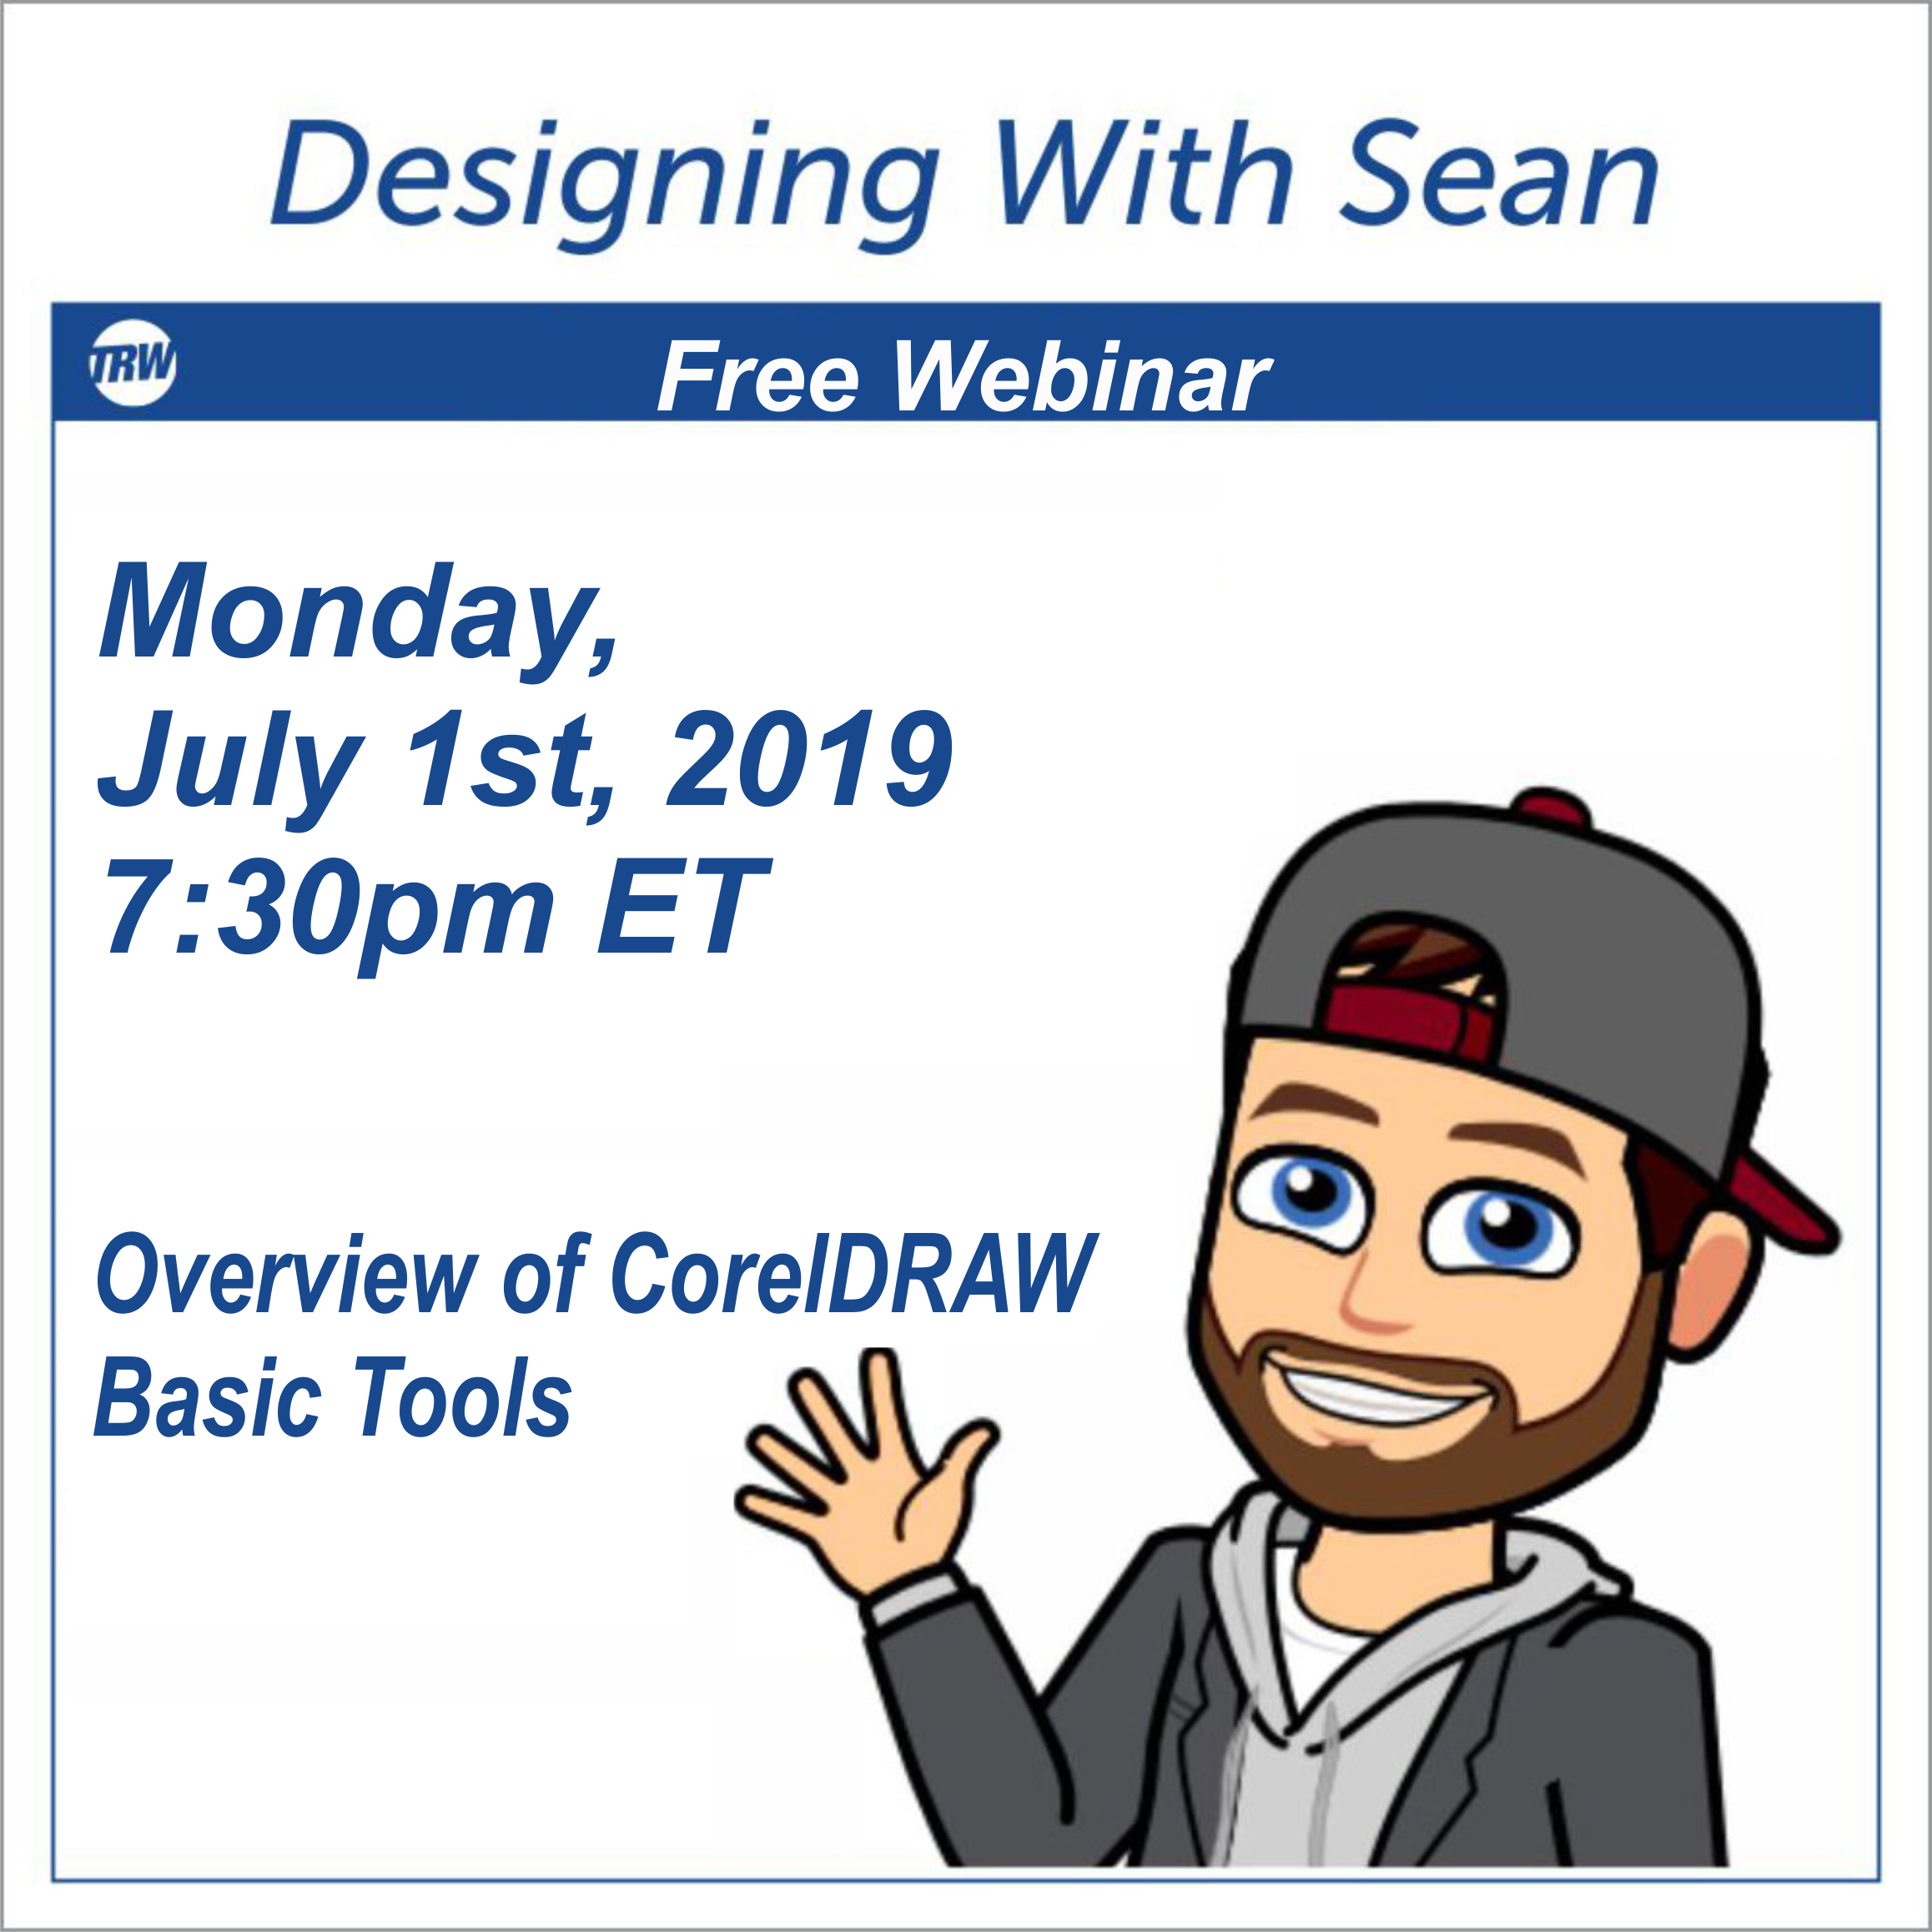 Designing with Sean - July 1st, 2019 Overview of CorelDRAW Basic Tools